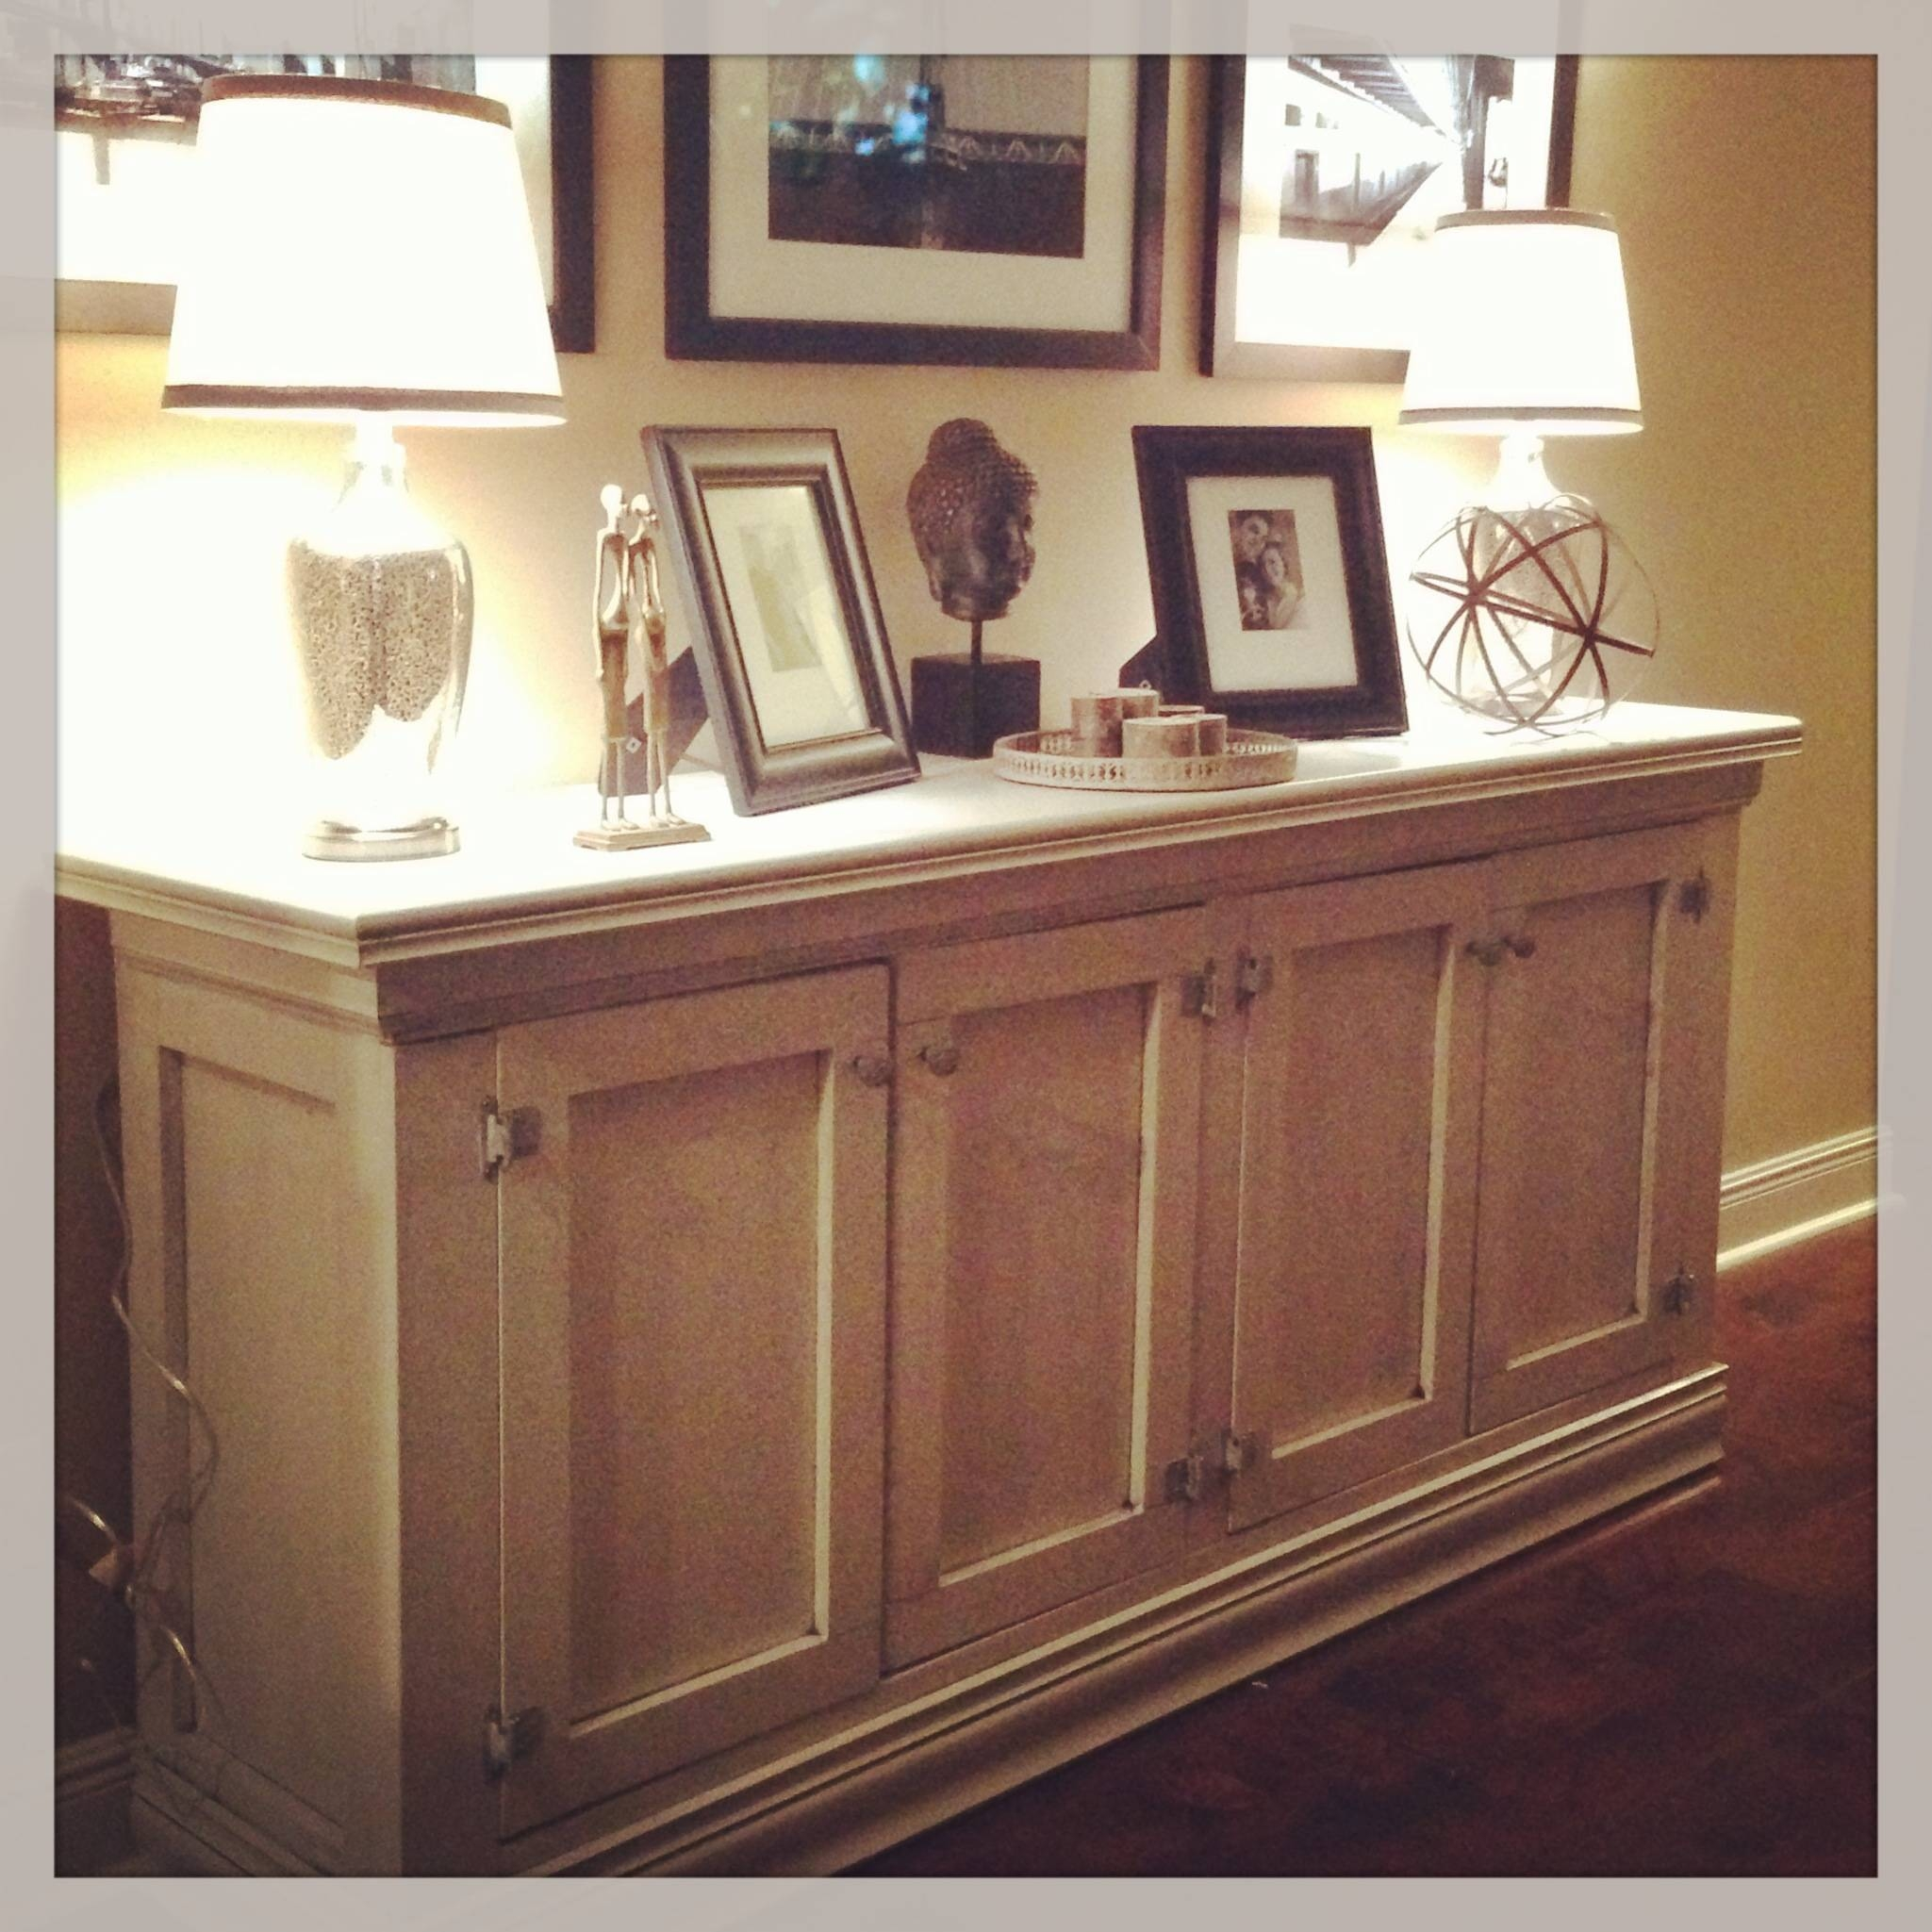 Buffet Or Sideboard Best Of And Diy Sideboard The Sweet Life Pertaining To Buffet Server Sideboards (View 5 of 15)